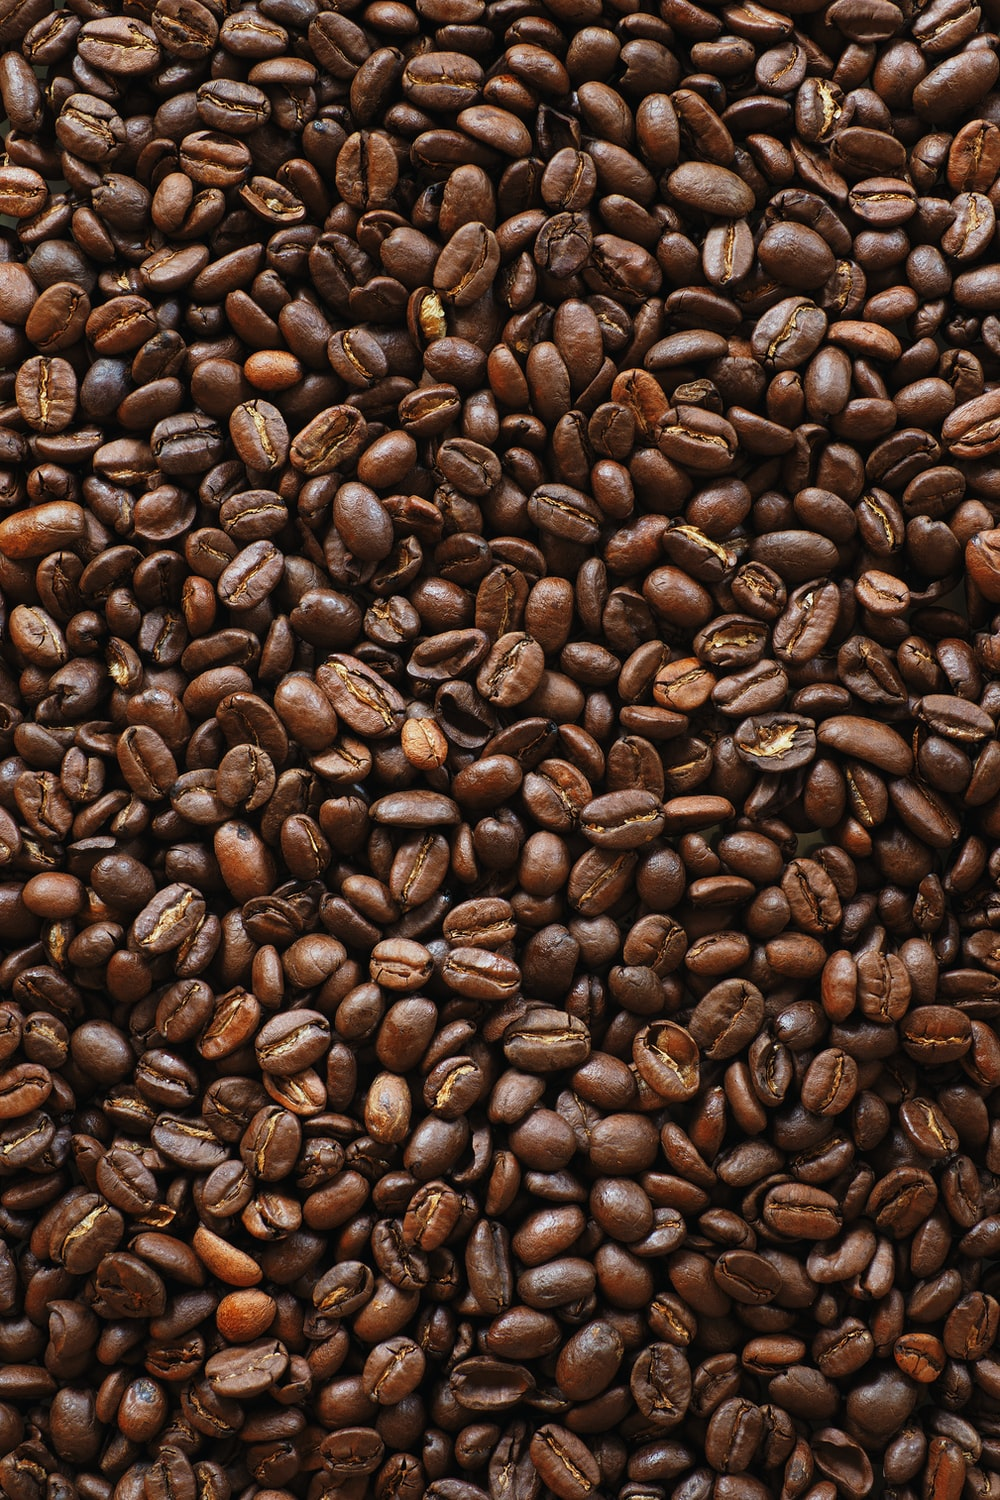 brown coffee beans on black surface